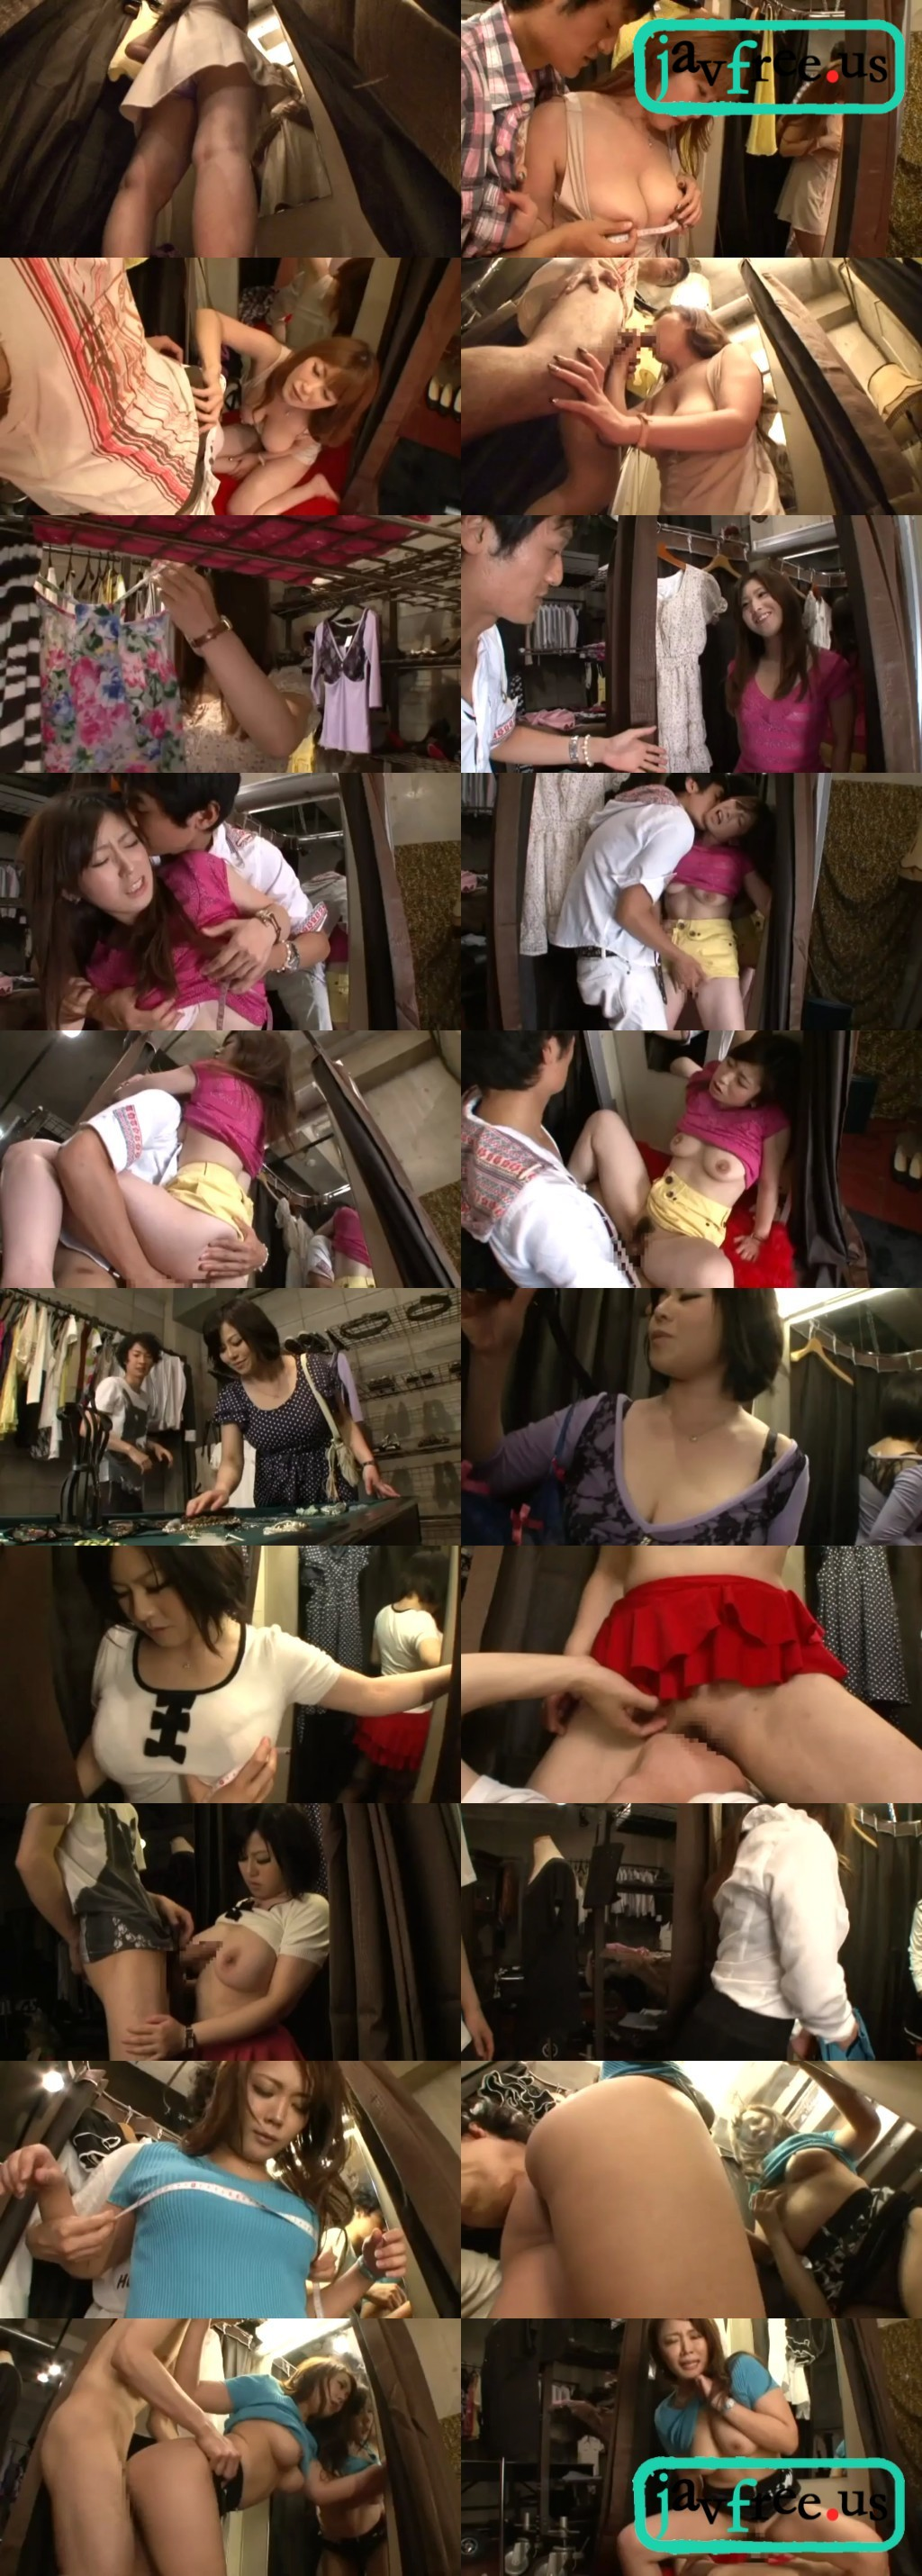 [AA-011] 巨乳試着室 2 - image AA-011 on https://javfree.me